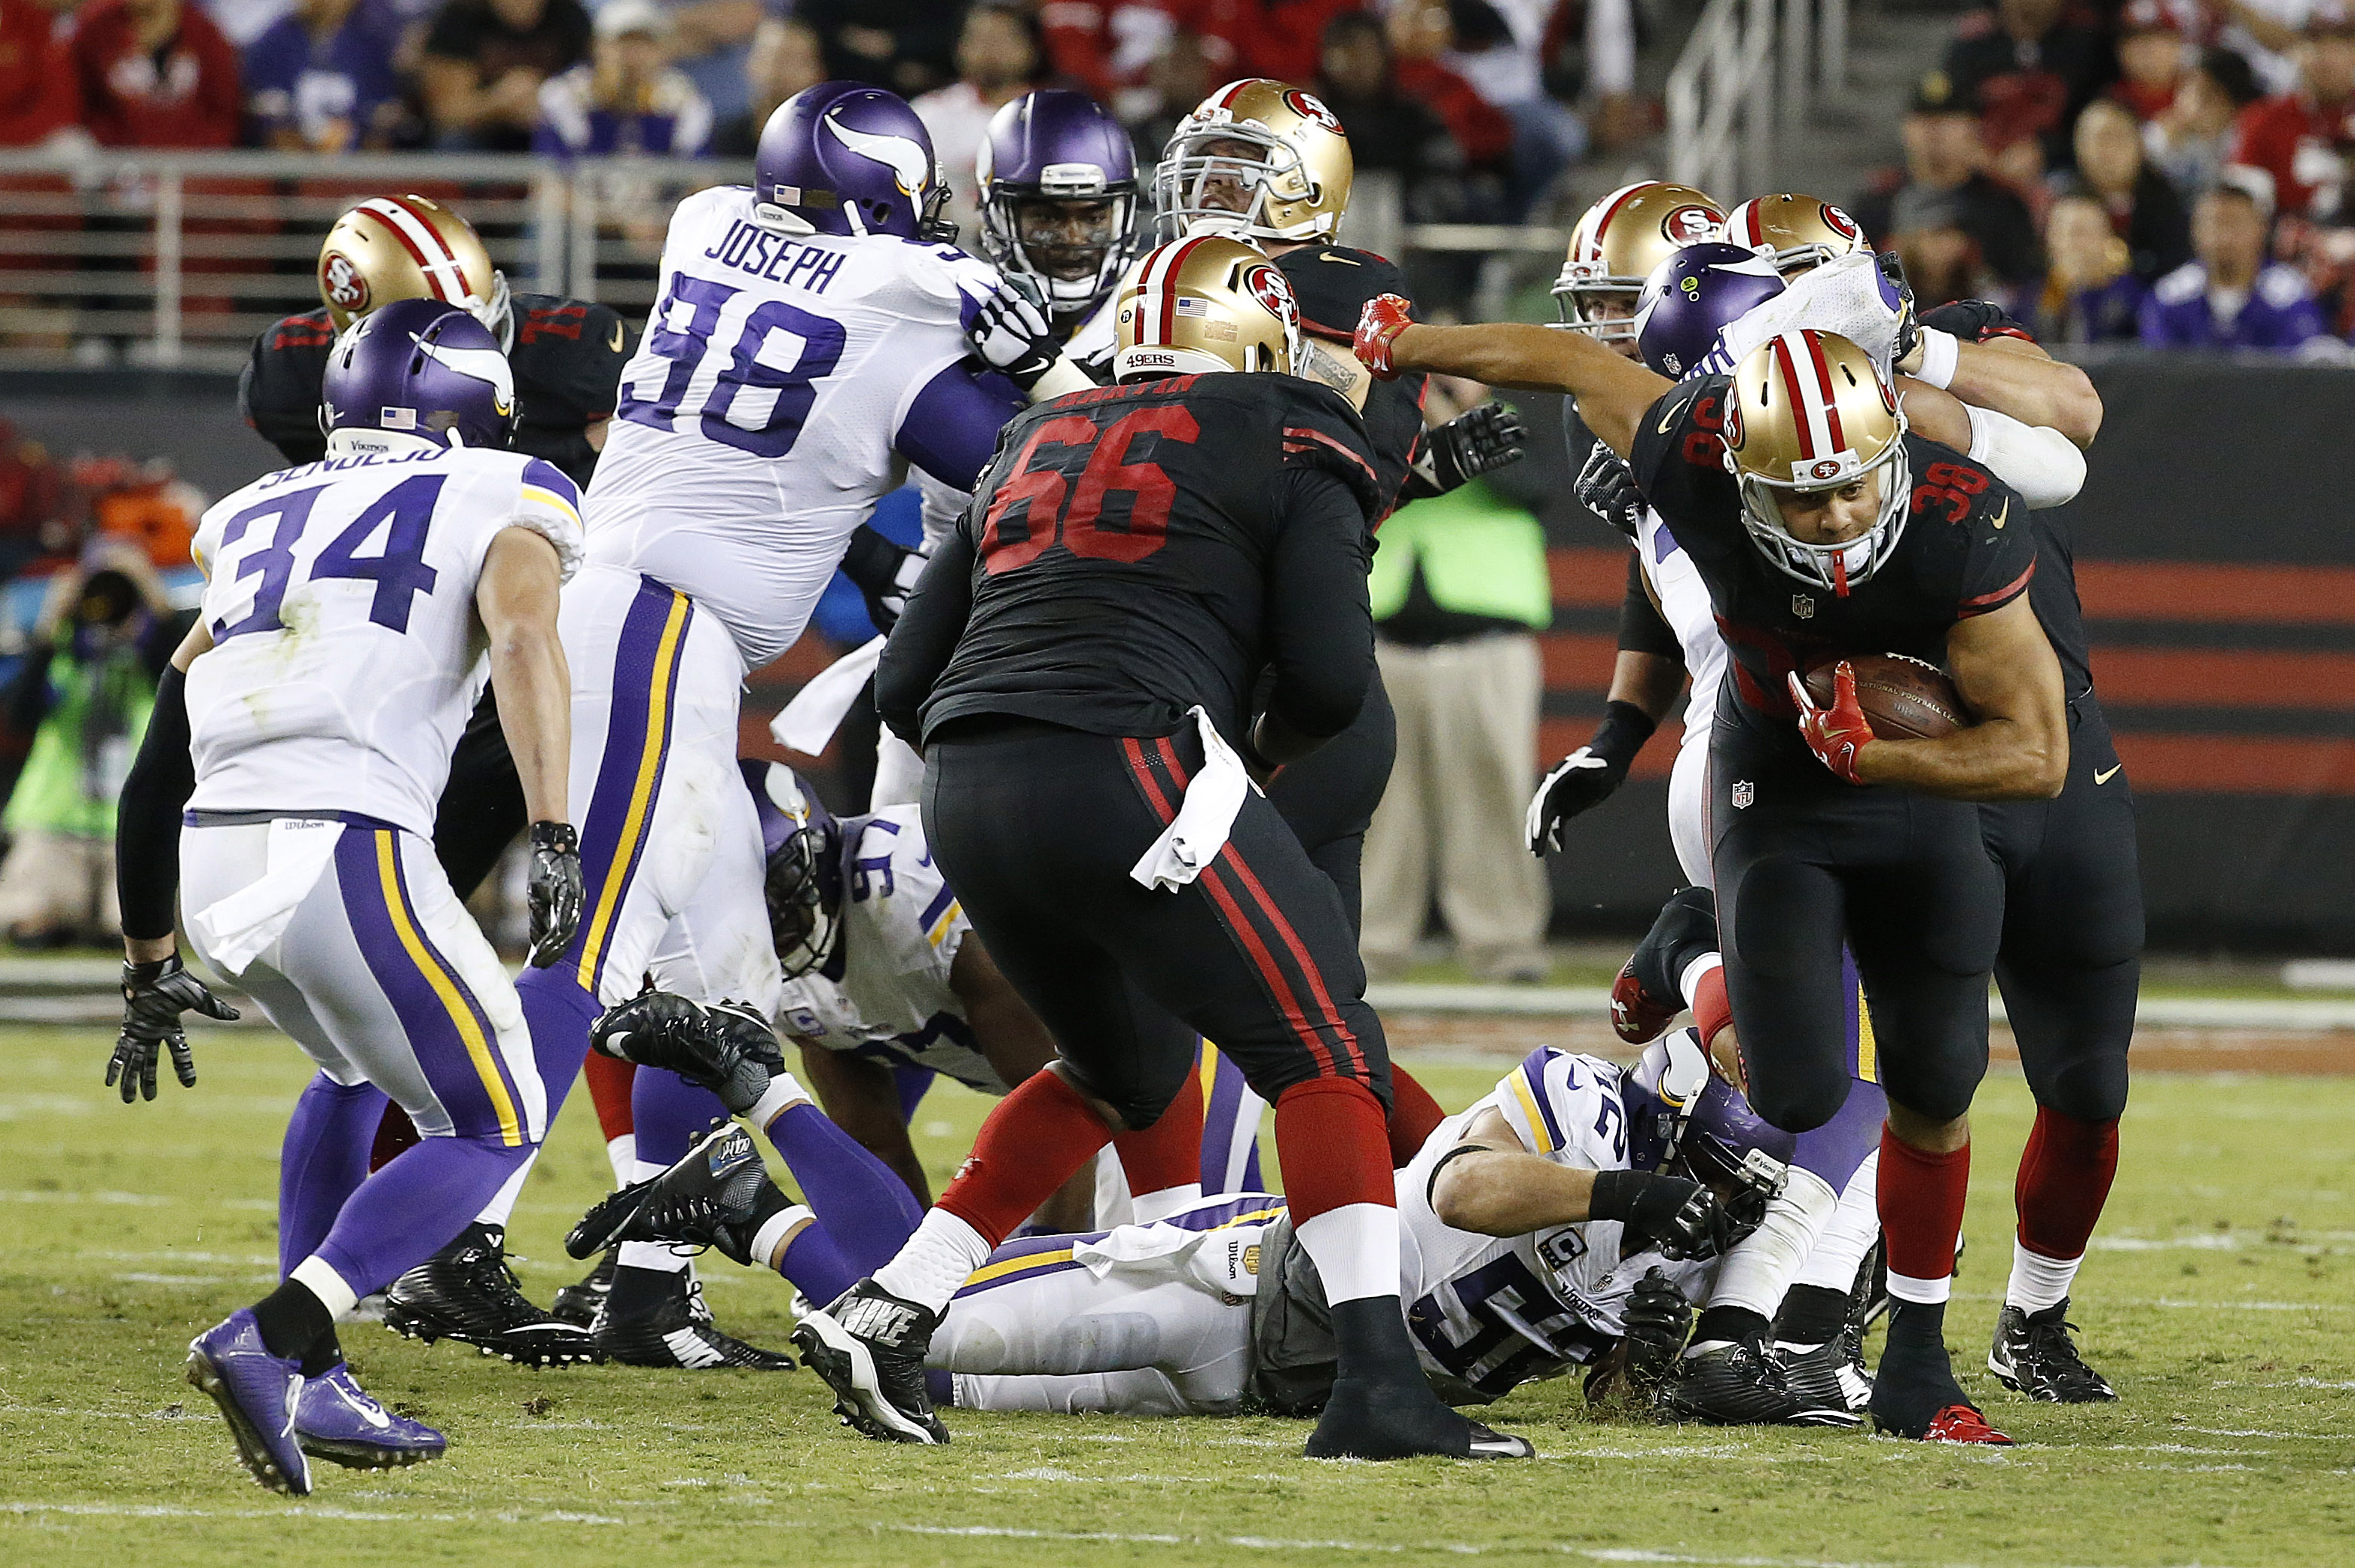 San Francisco 49ers running back Jarryd Hayne, right, runs against the Minnesota Vikings during the second half of an NFL football game in Santa Clara, Calif., Monday, Sept. 14, 2015. (AP Photo/Tony Avelar)